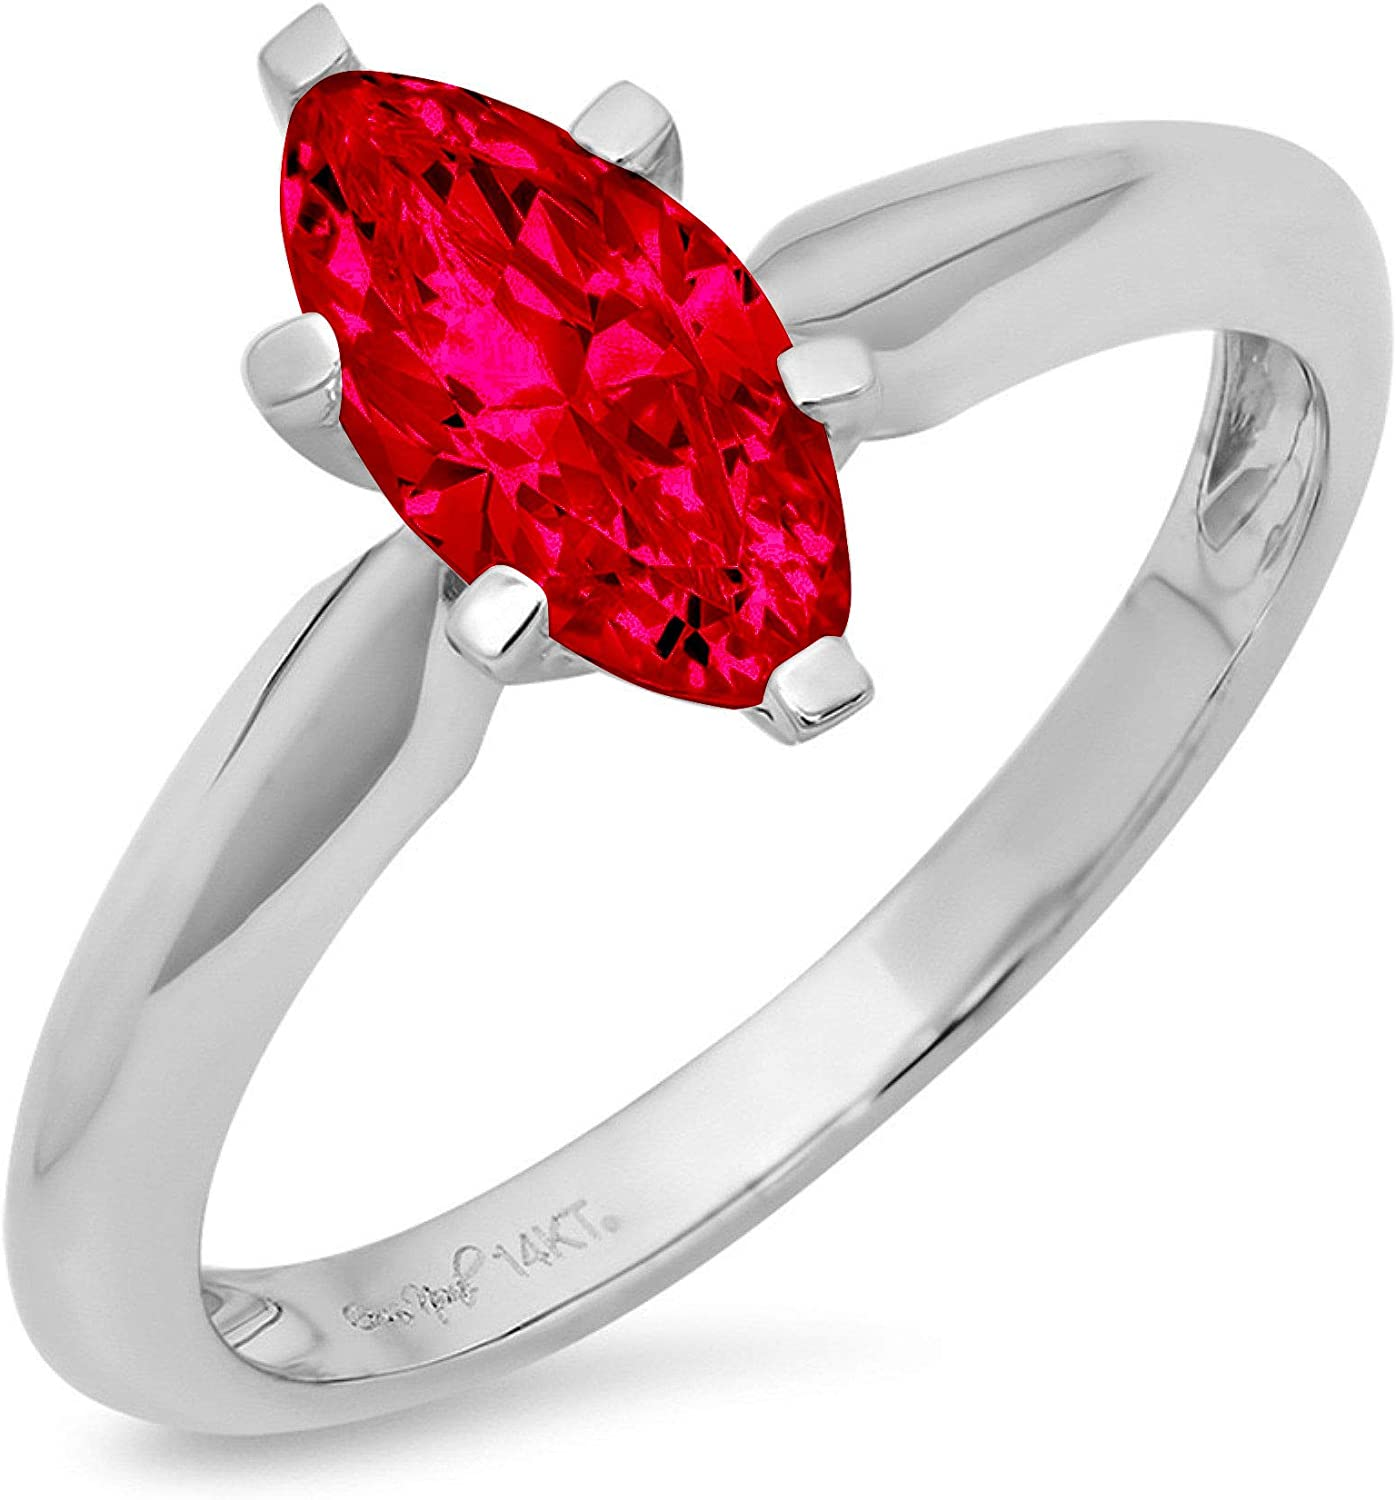 1.4ct Brilliant Marquise Cut Solitaire Flawless Simulated Cubic Zirconia Red Ruby Ideal VVS1 6-Prong Engagement Wedding Bridal Promise Anniversary Designer Ring Solid 14k White Gold for Women